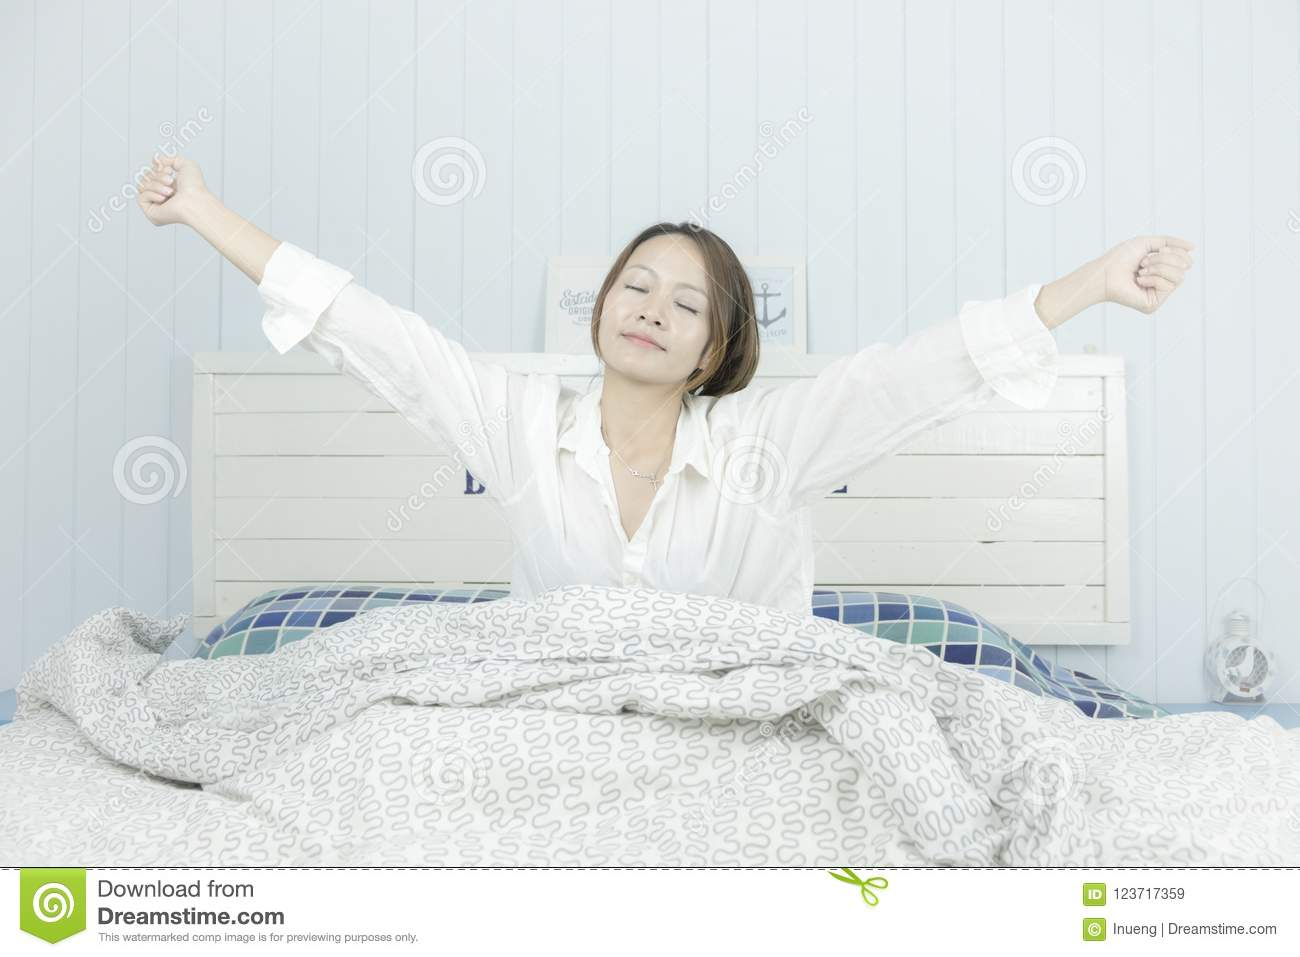 Beautiful asian woman listening to music. Listening Music Headphones Concept.Attractive asian woman awaking on the bed, sitting on